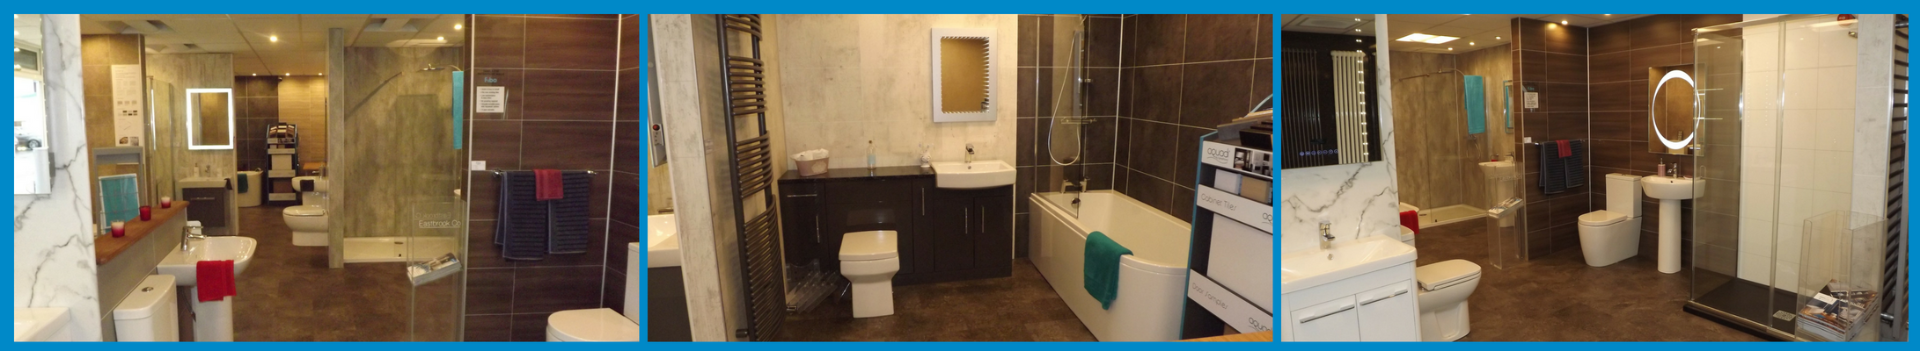 Plumbstore Inverness Bathroom showroom display area